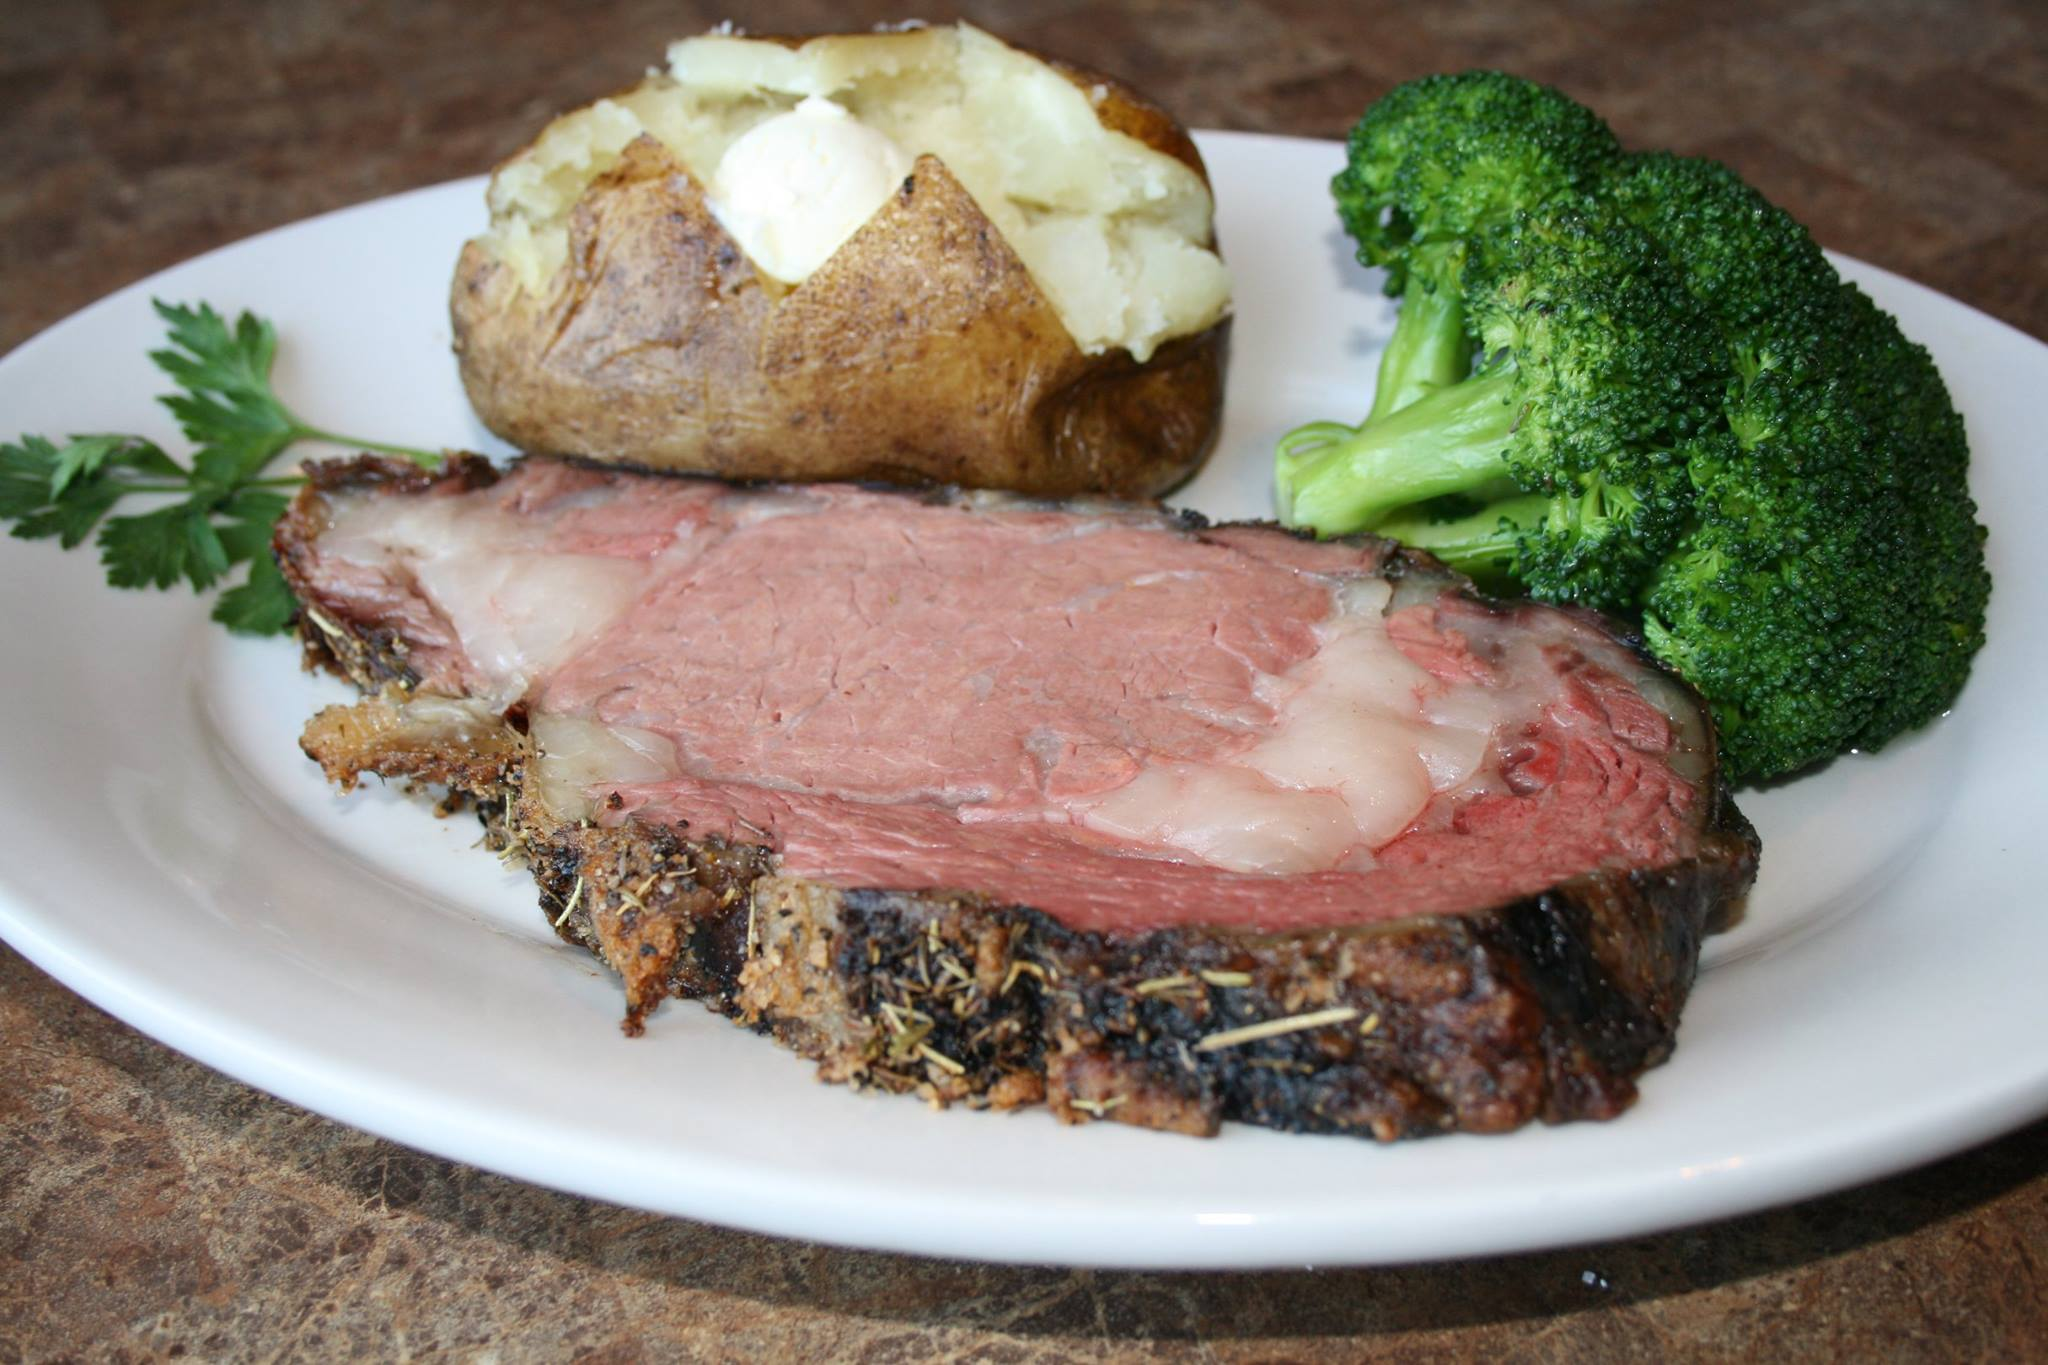 prime rib cooked medium rare with broccoli and a baked potato on the side.